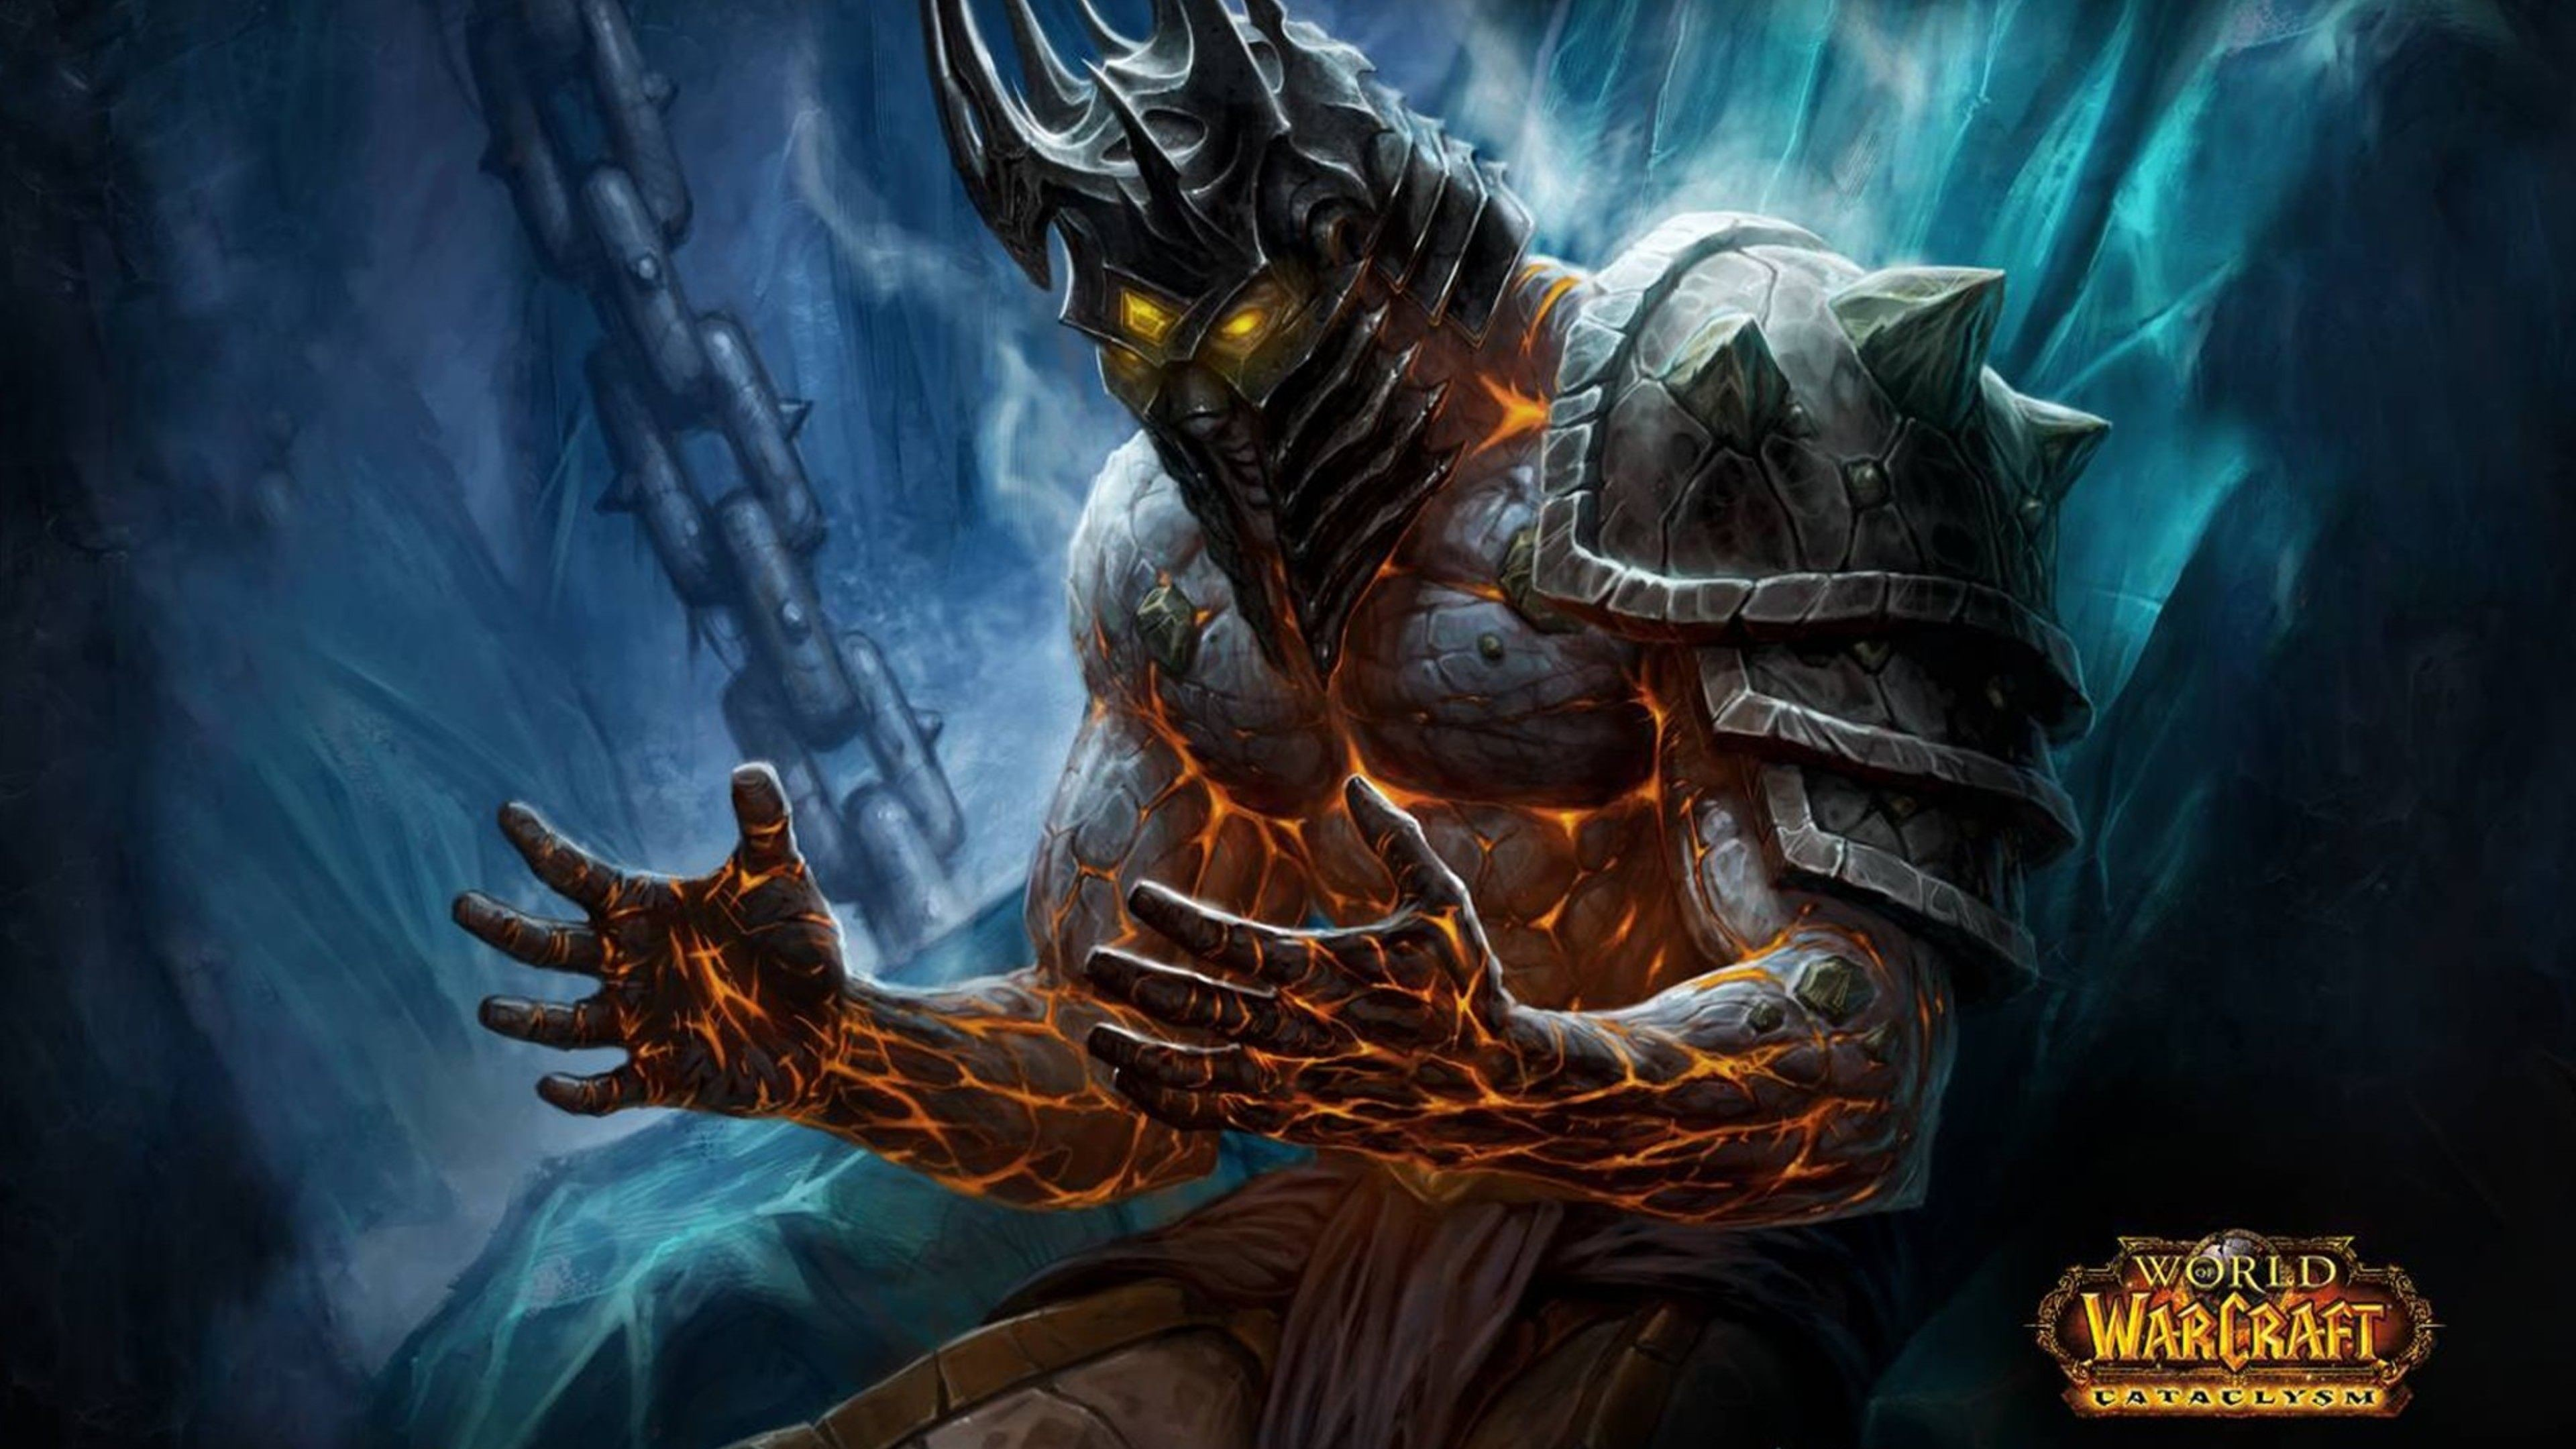 … WOW: The Lich King full hd wallpapers